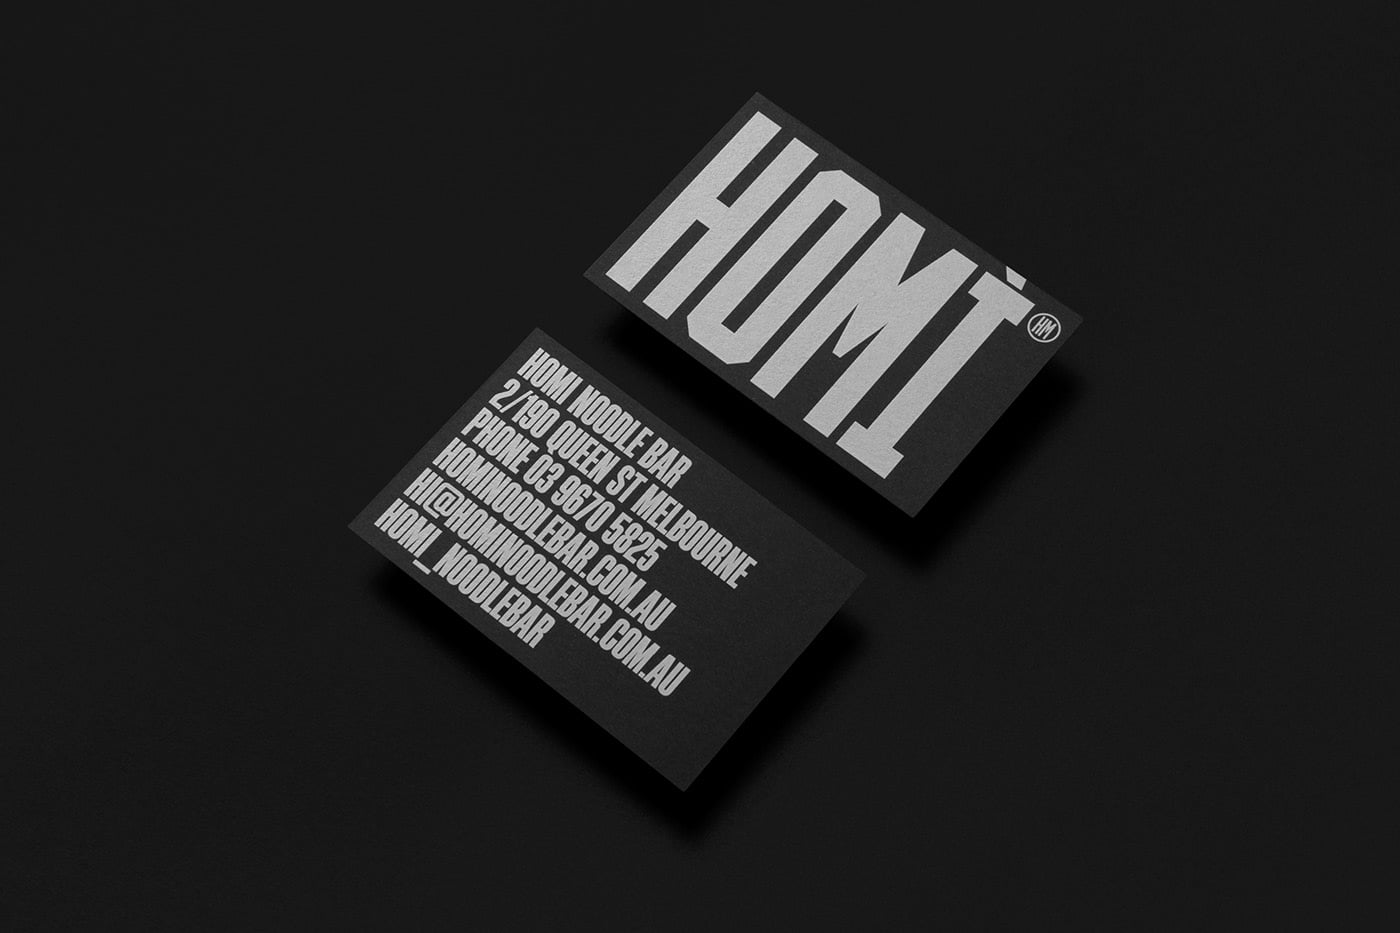 Homi-1 - 53+ FREE Typographic Business Cards IDEA [year]